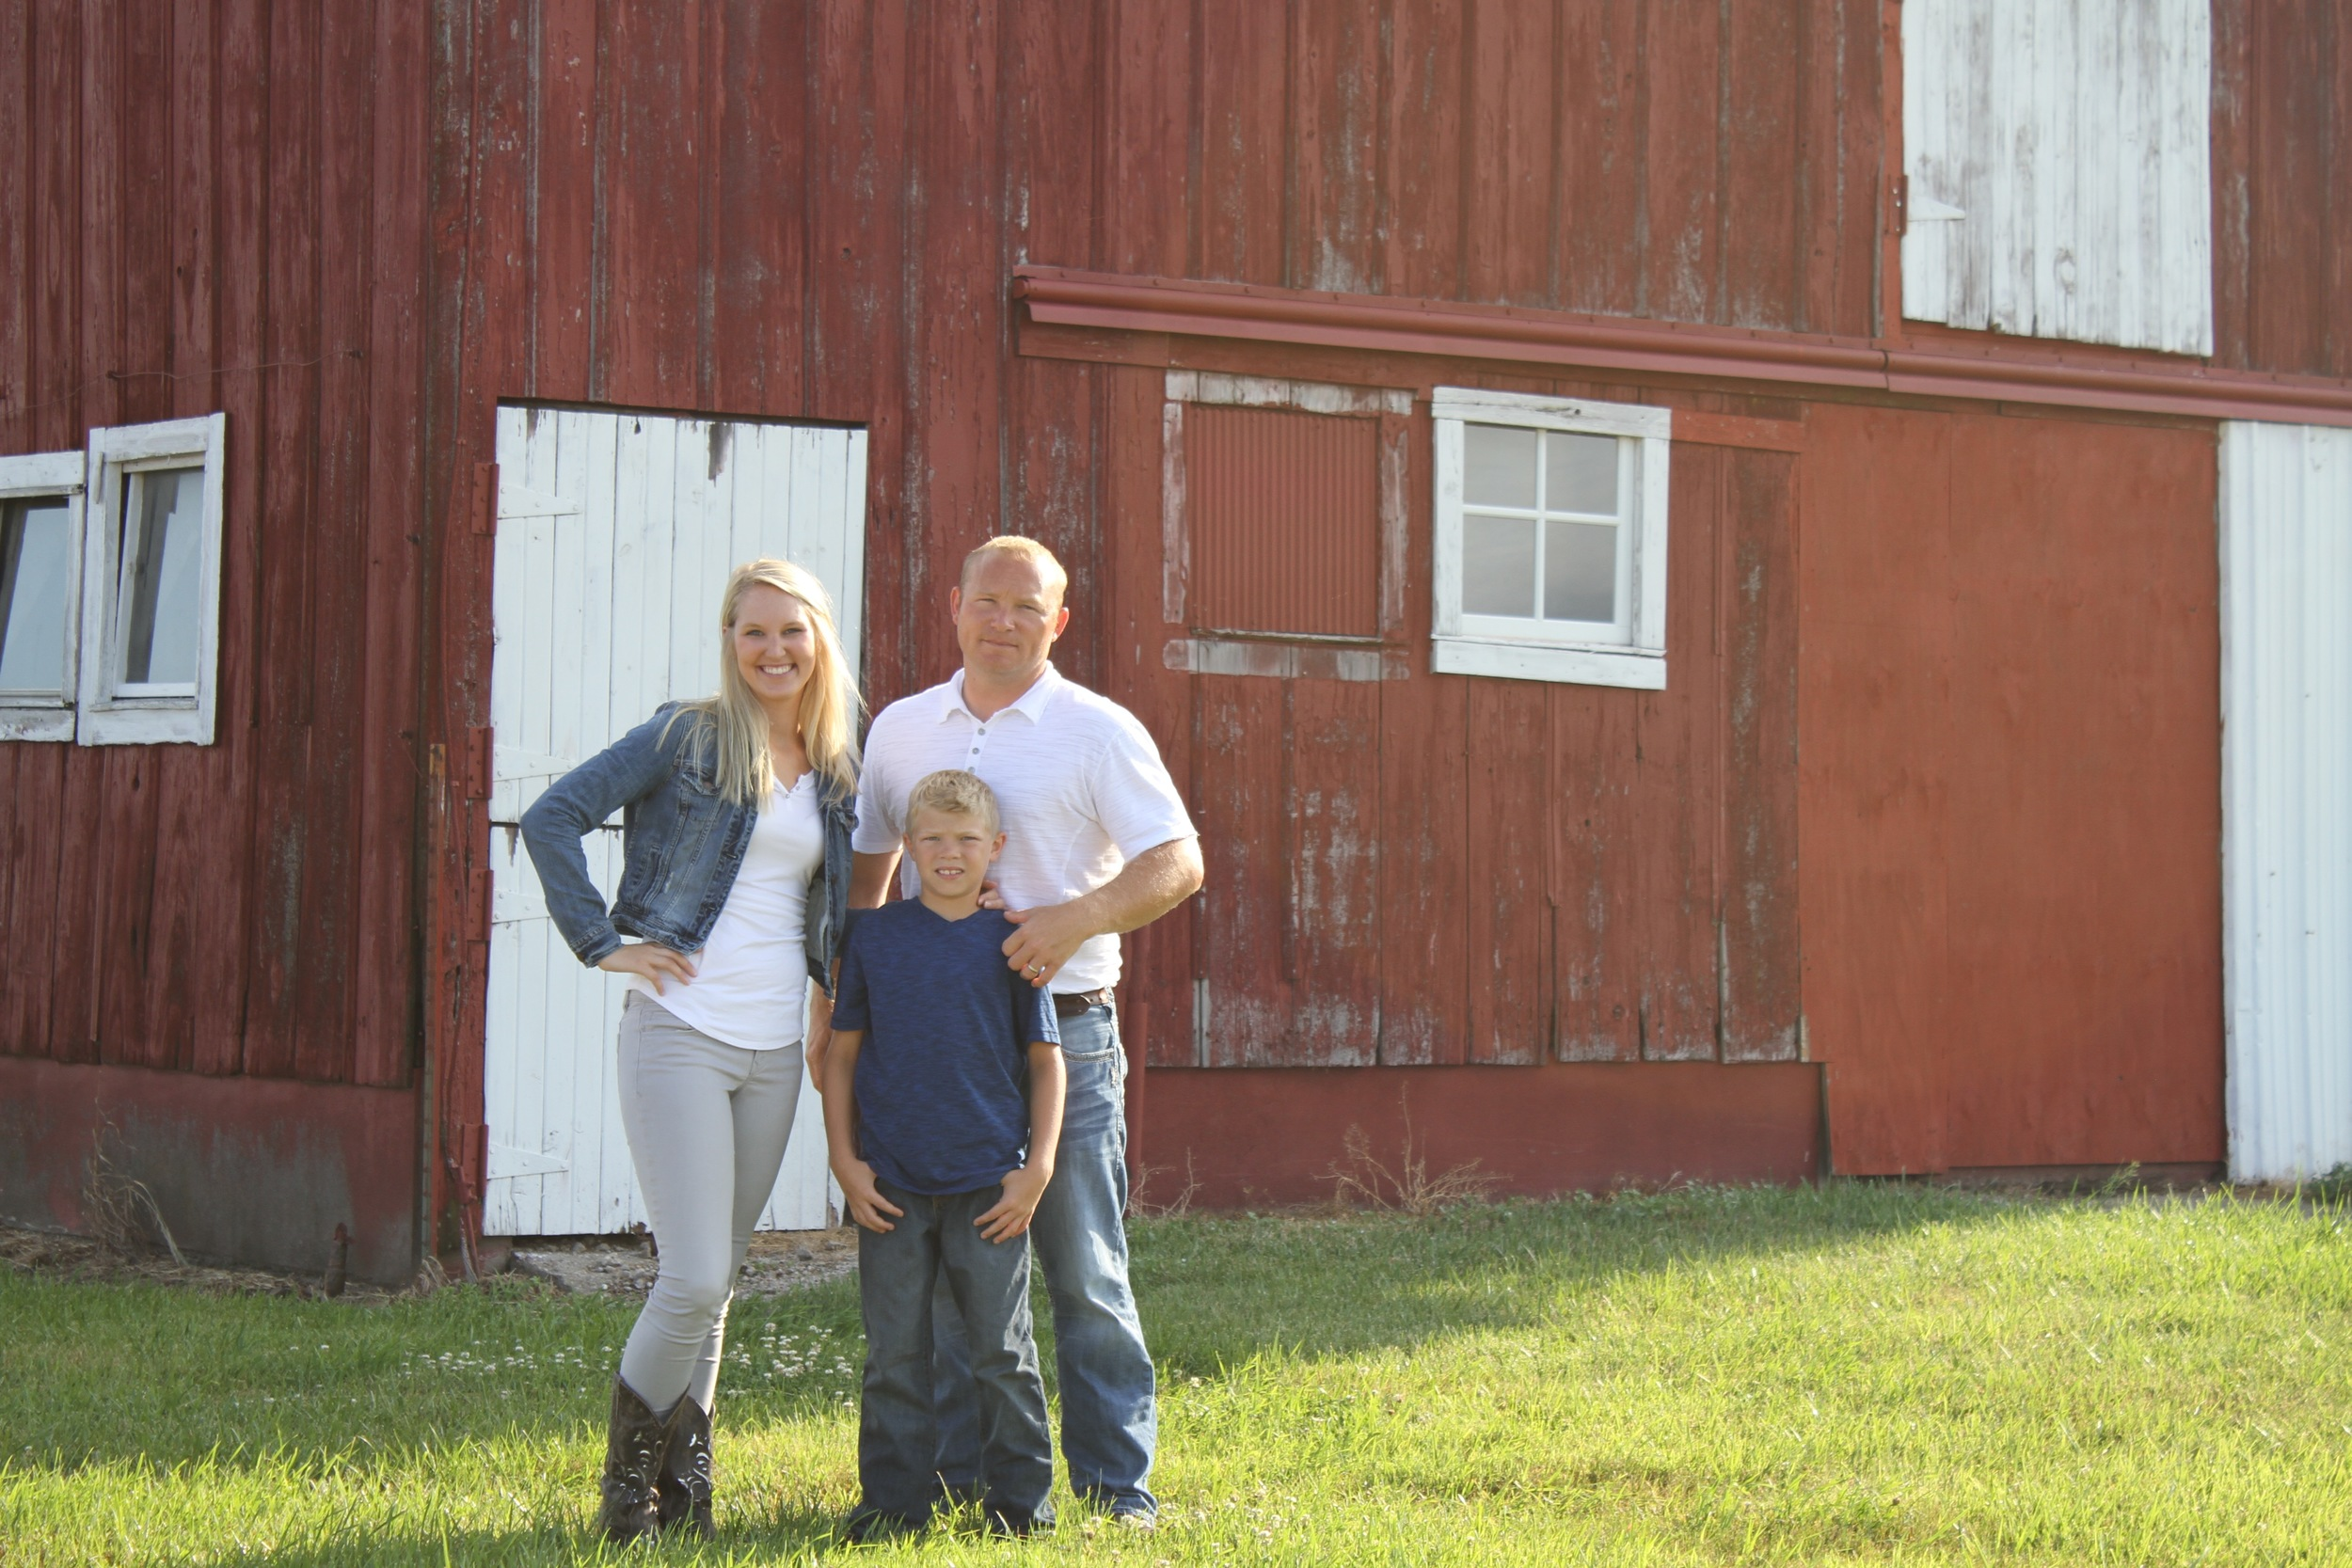 Garrett with his son, Cael, and sister, Chandler.